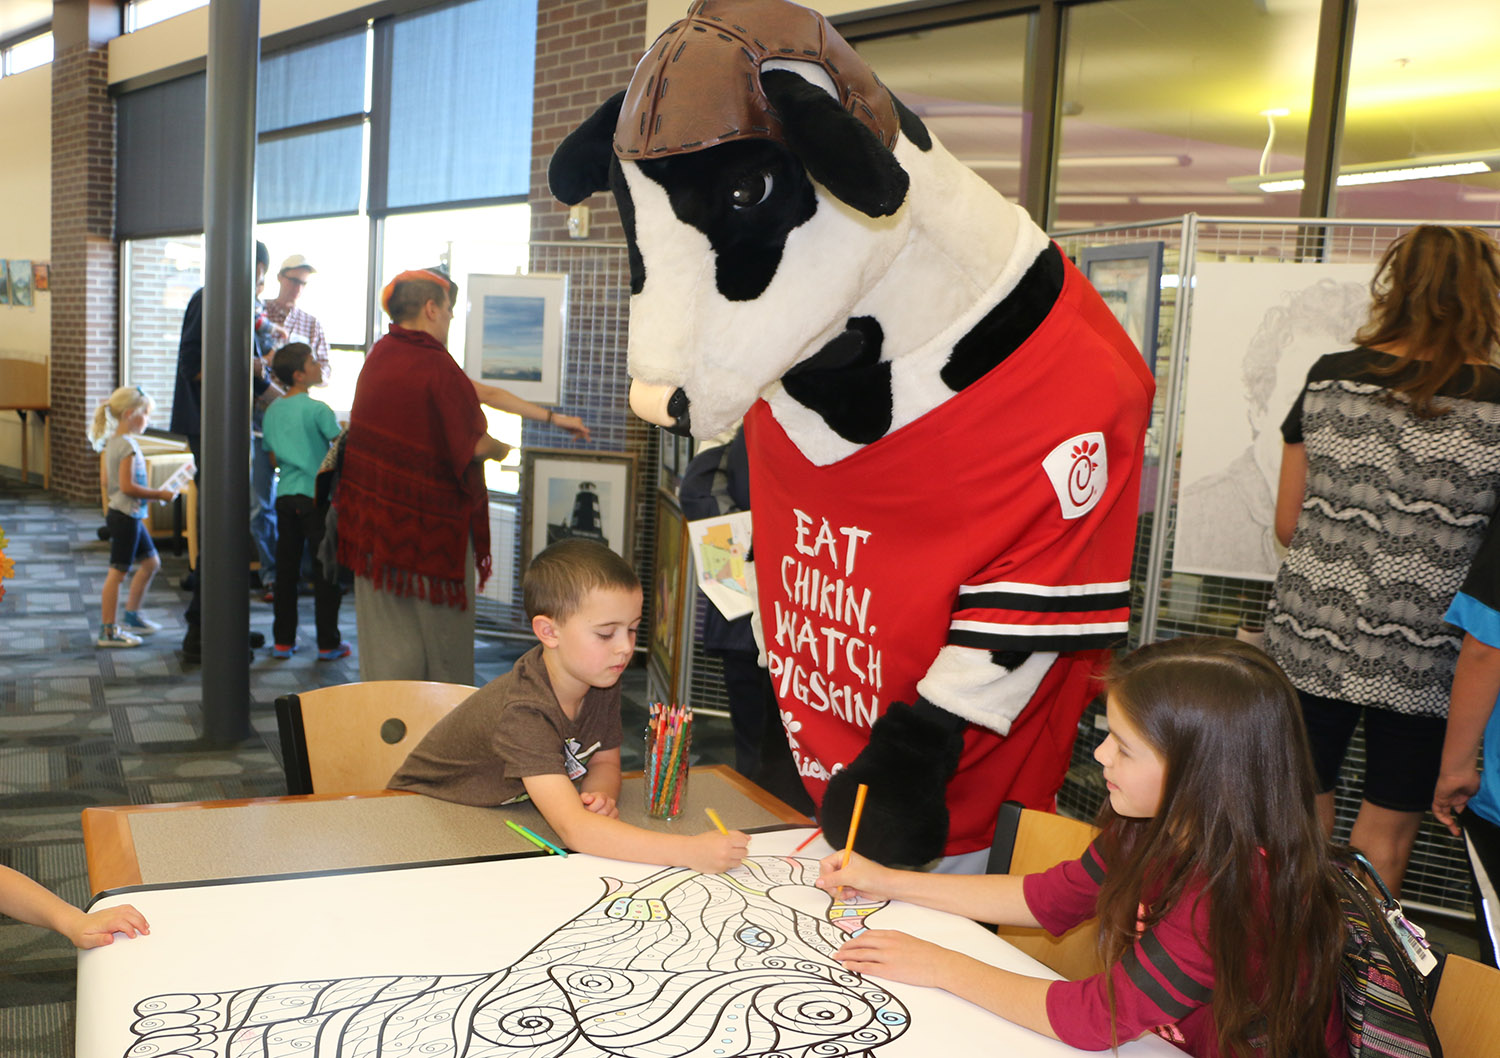 Chick Filet cow watching children color